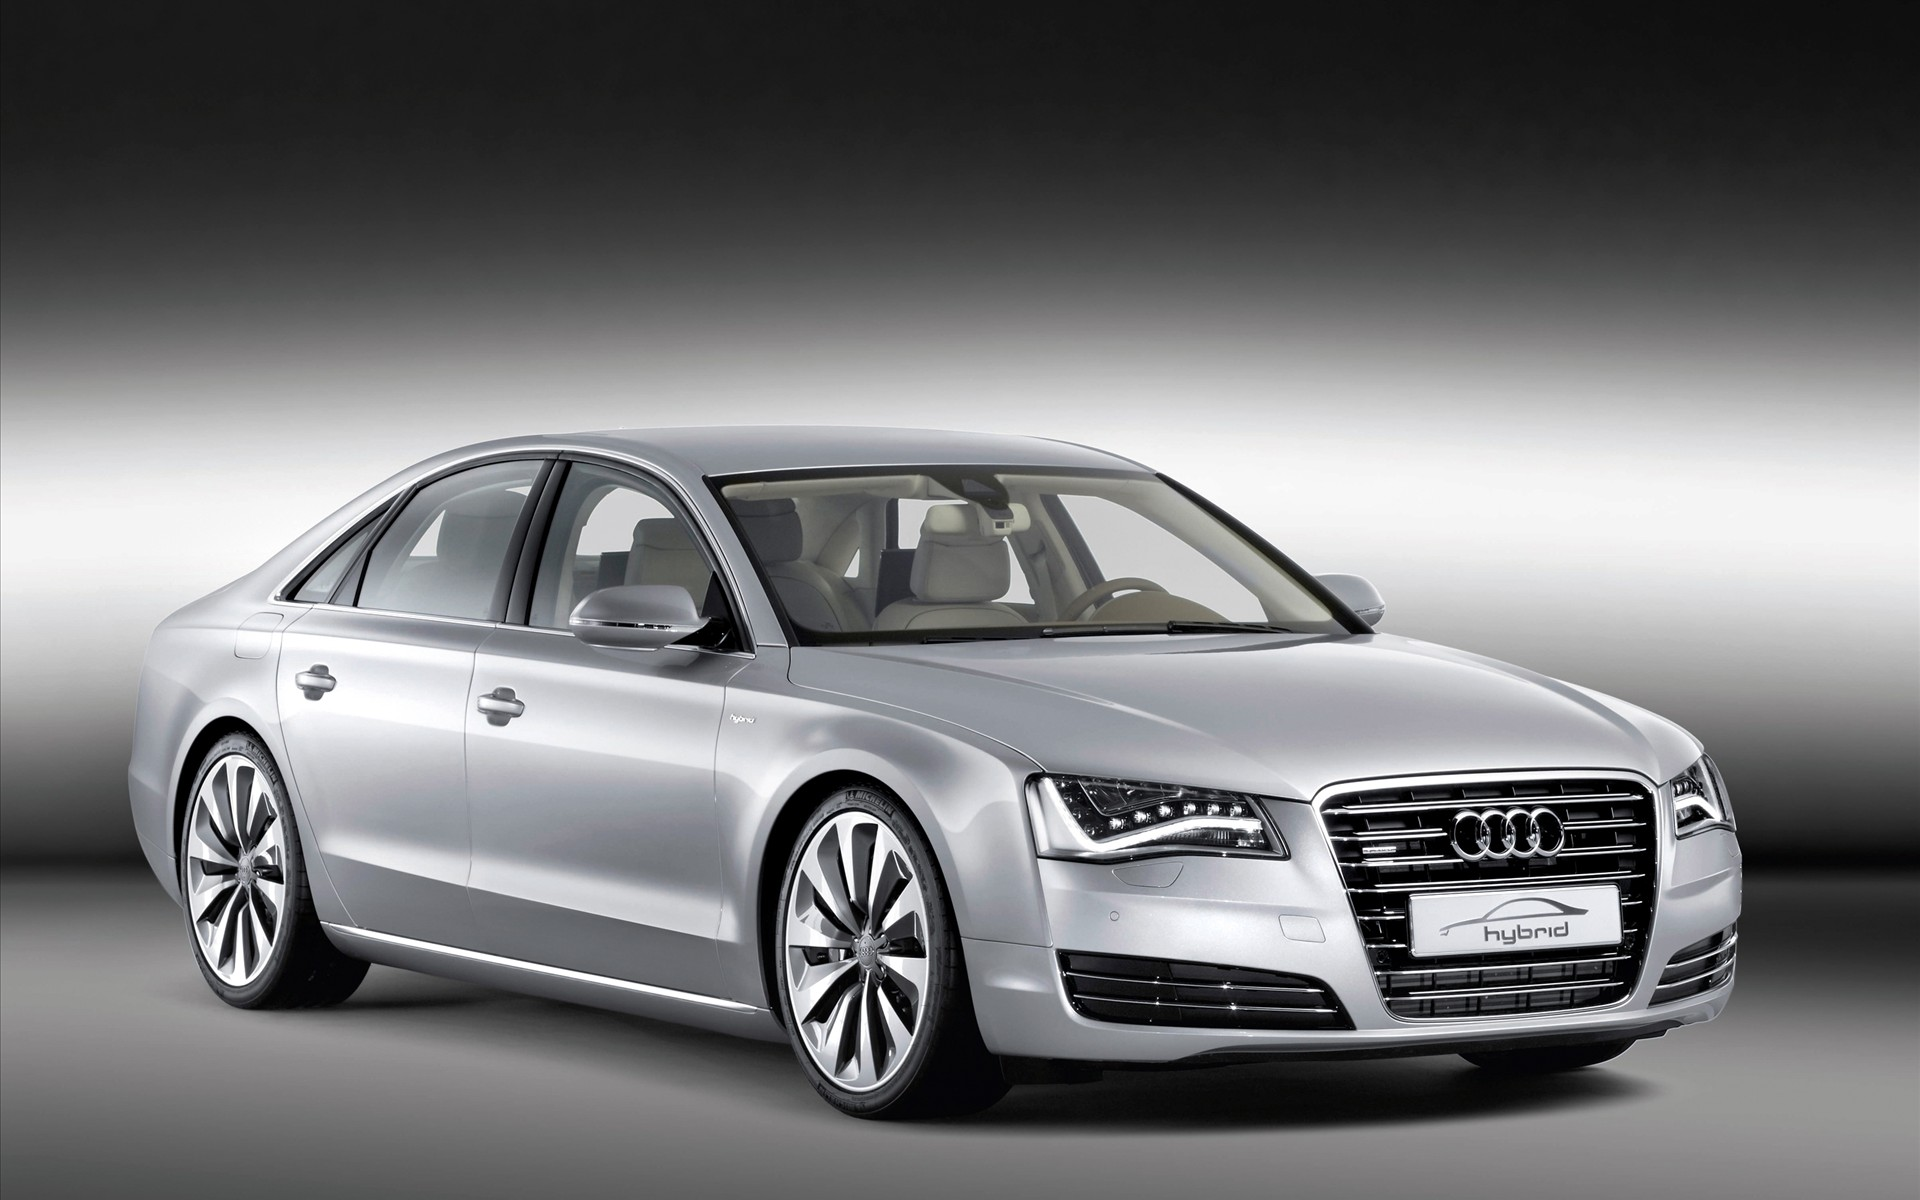 2011 Audi A8 Hybrid Wallpapers HD Wallpapers 1920x1200